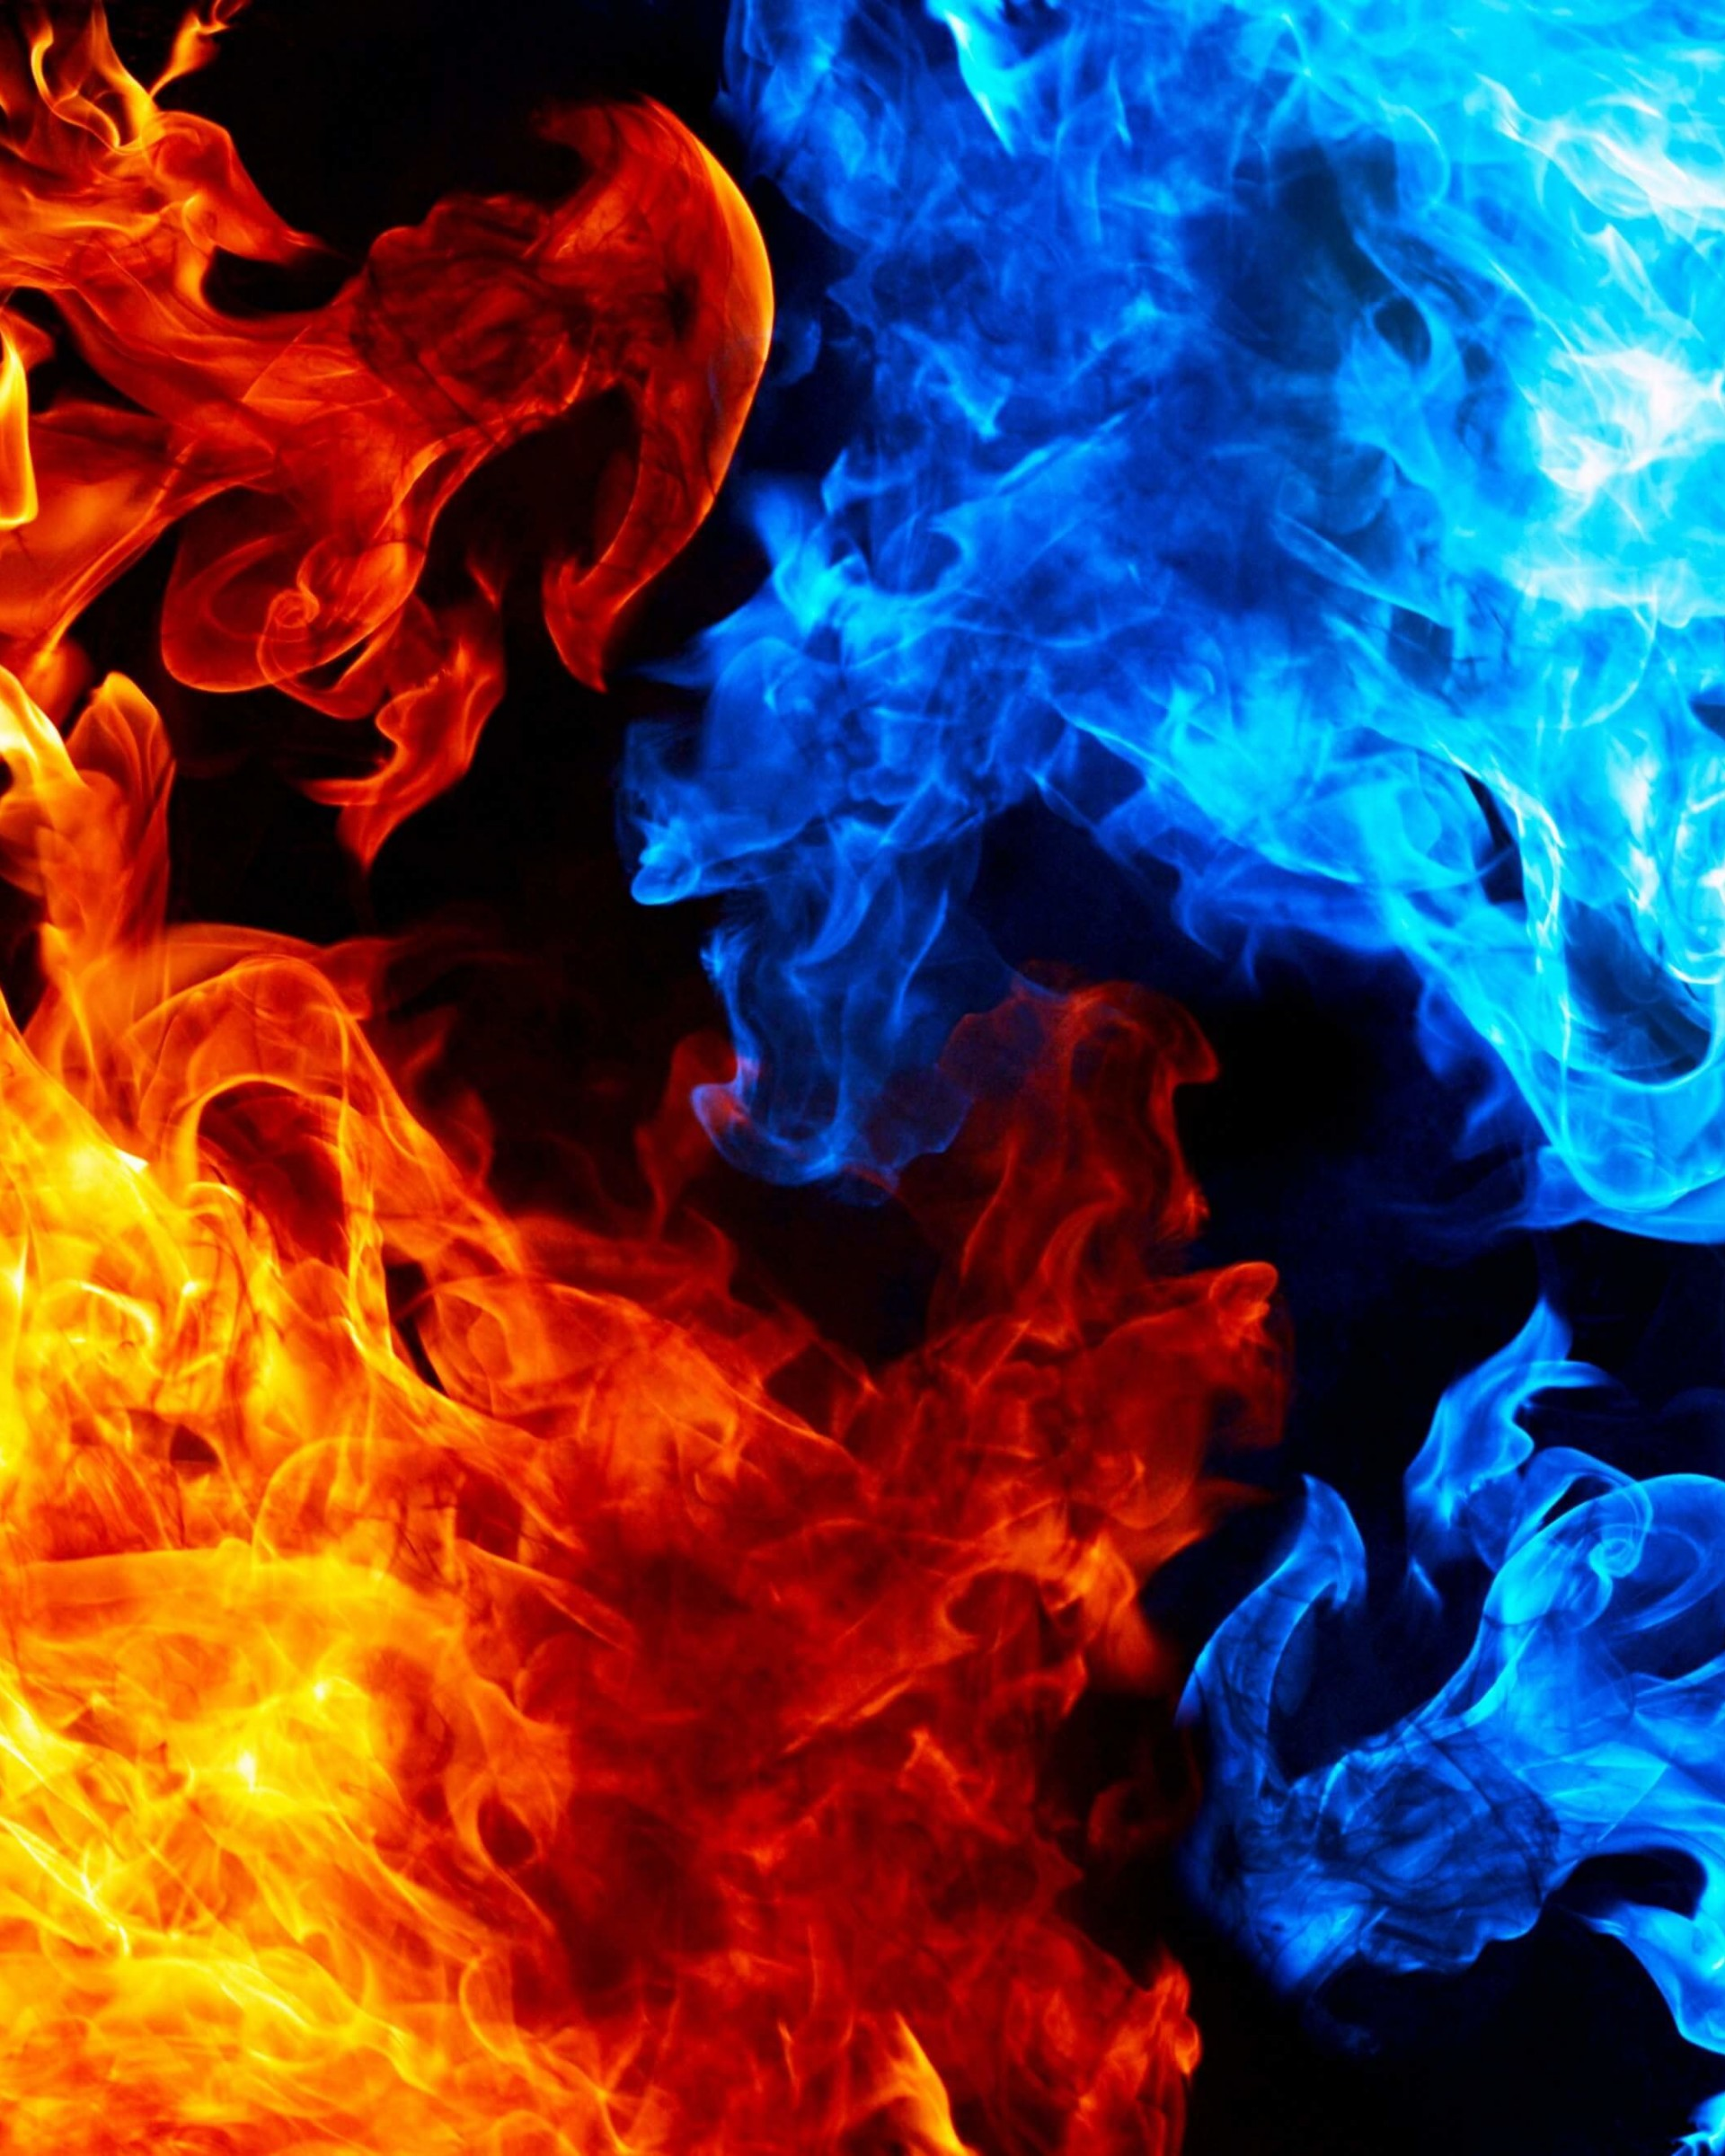 Download Blue And Red Fire HD Wallpaper For Nexus 7